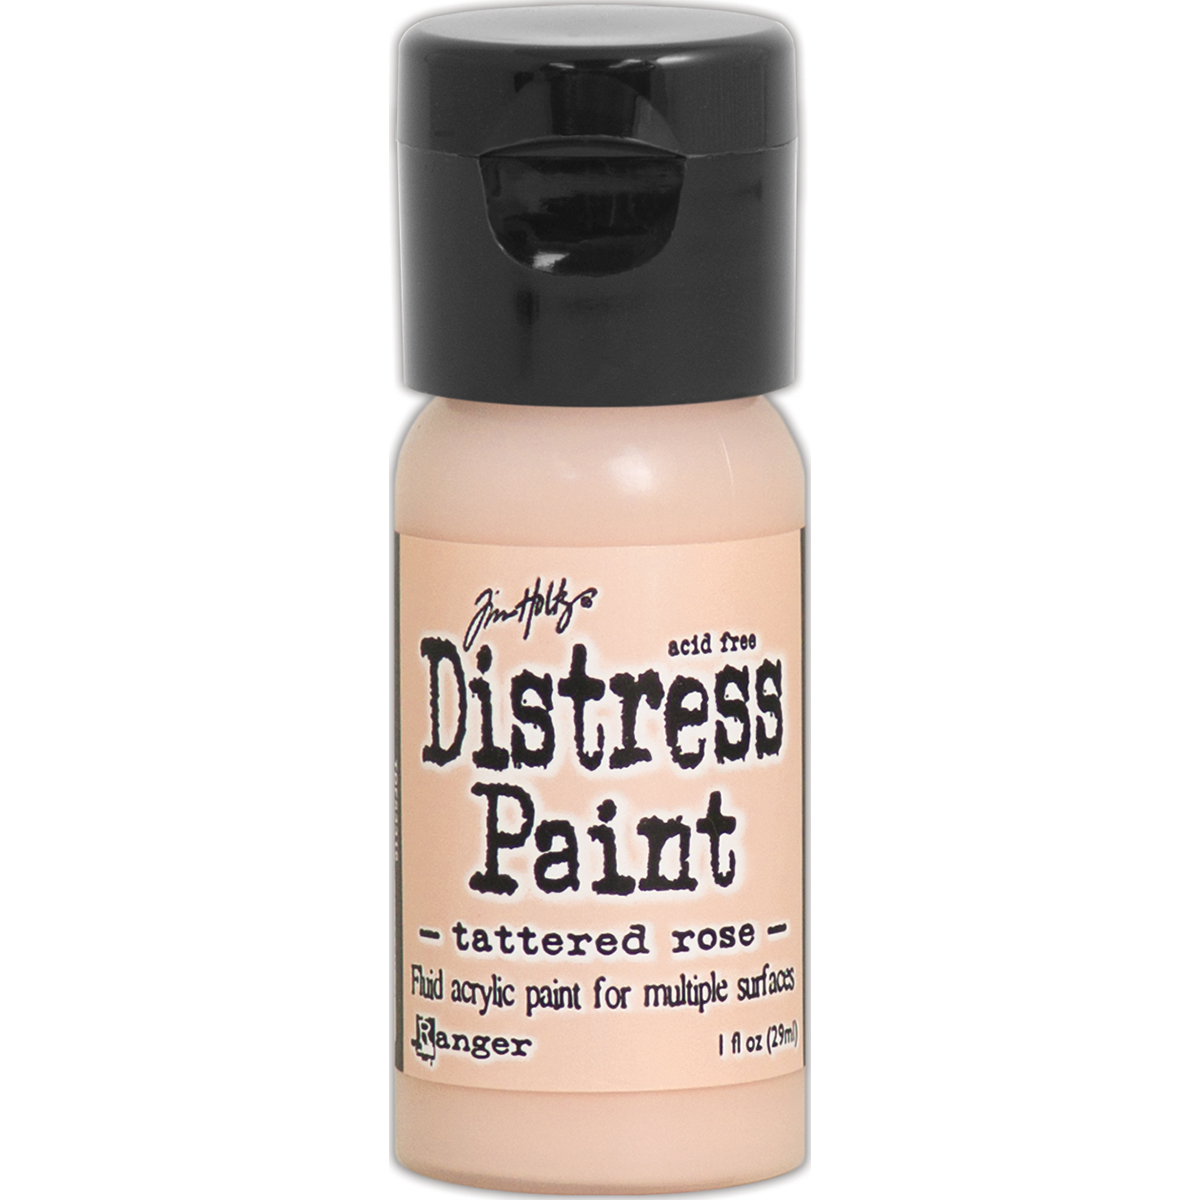 Tattered Rose distress paint